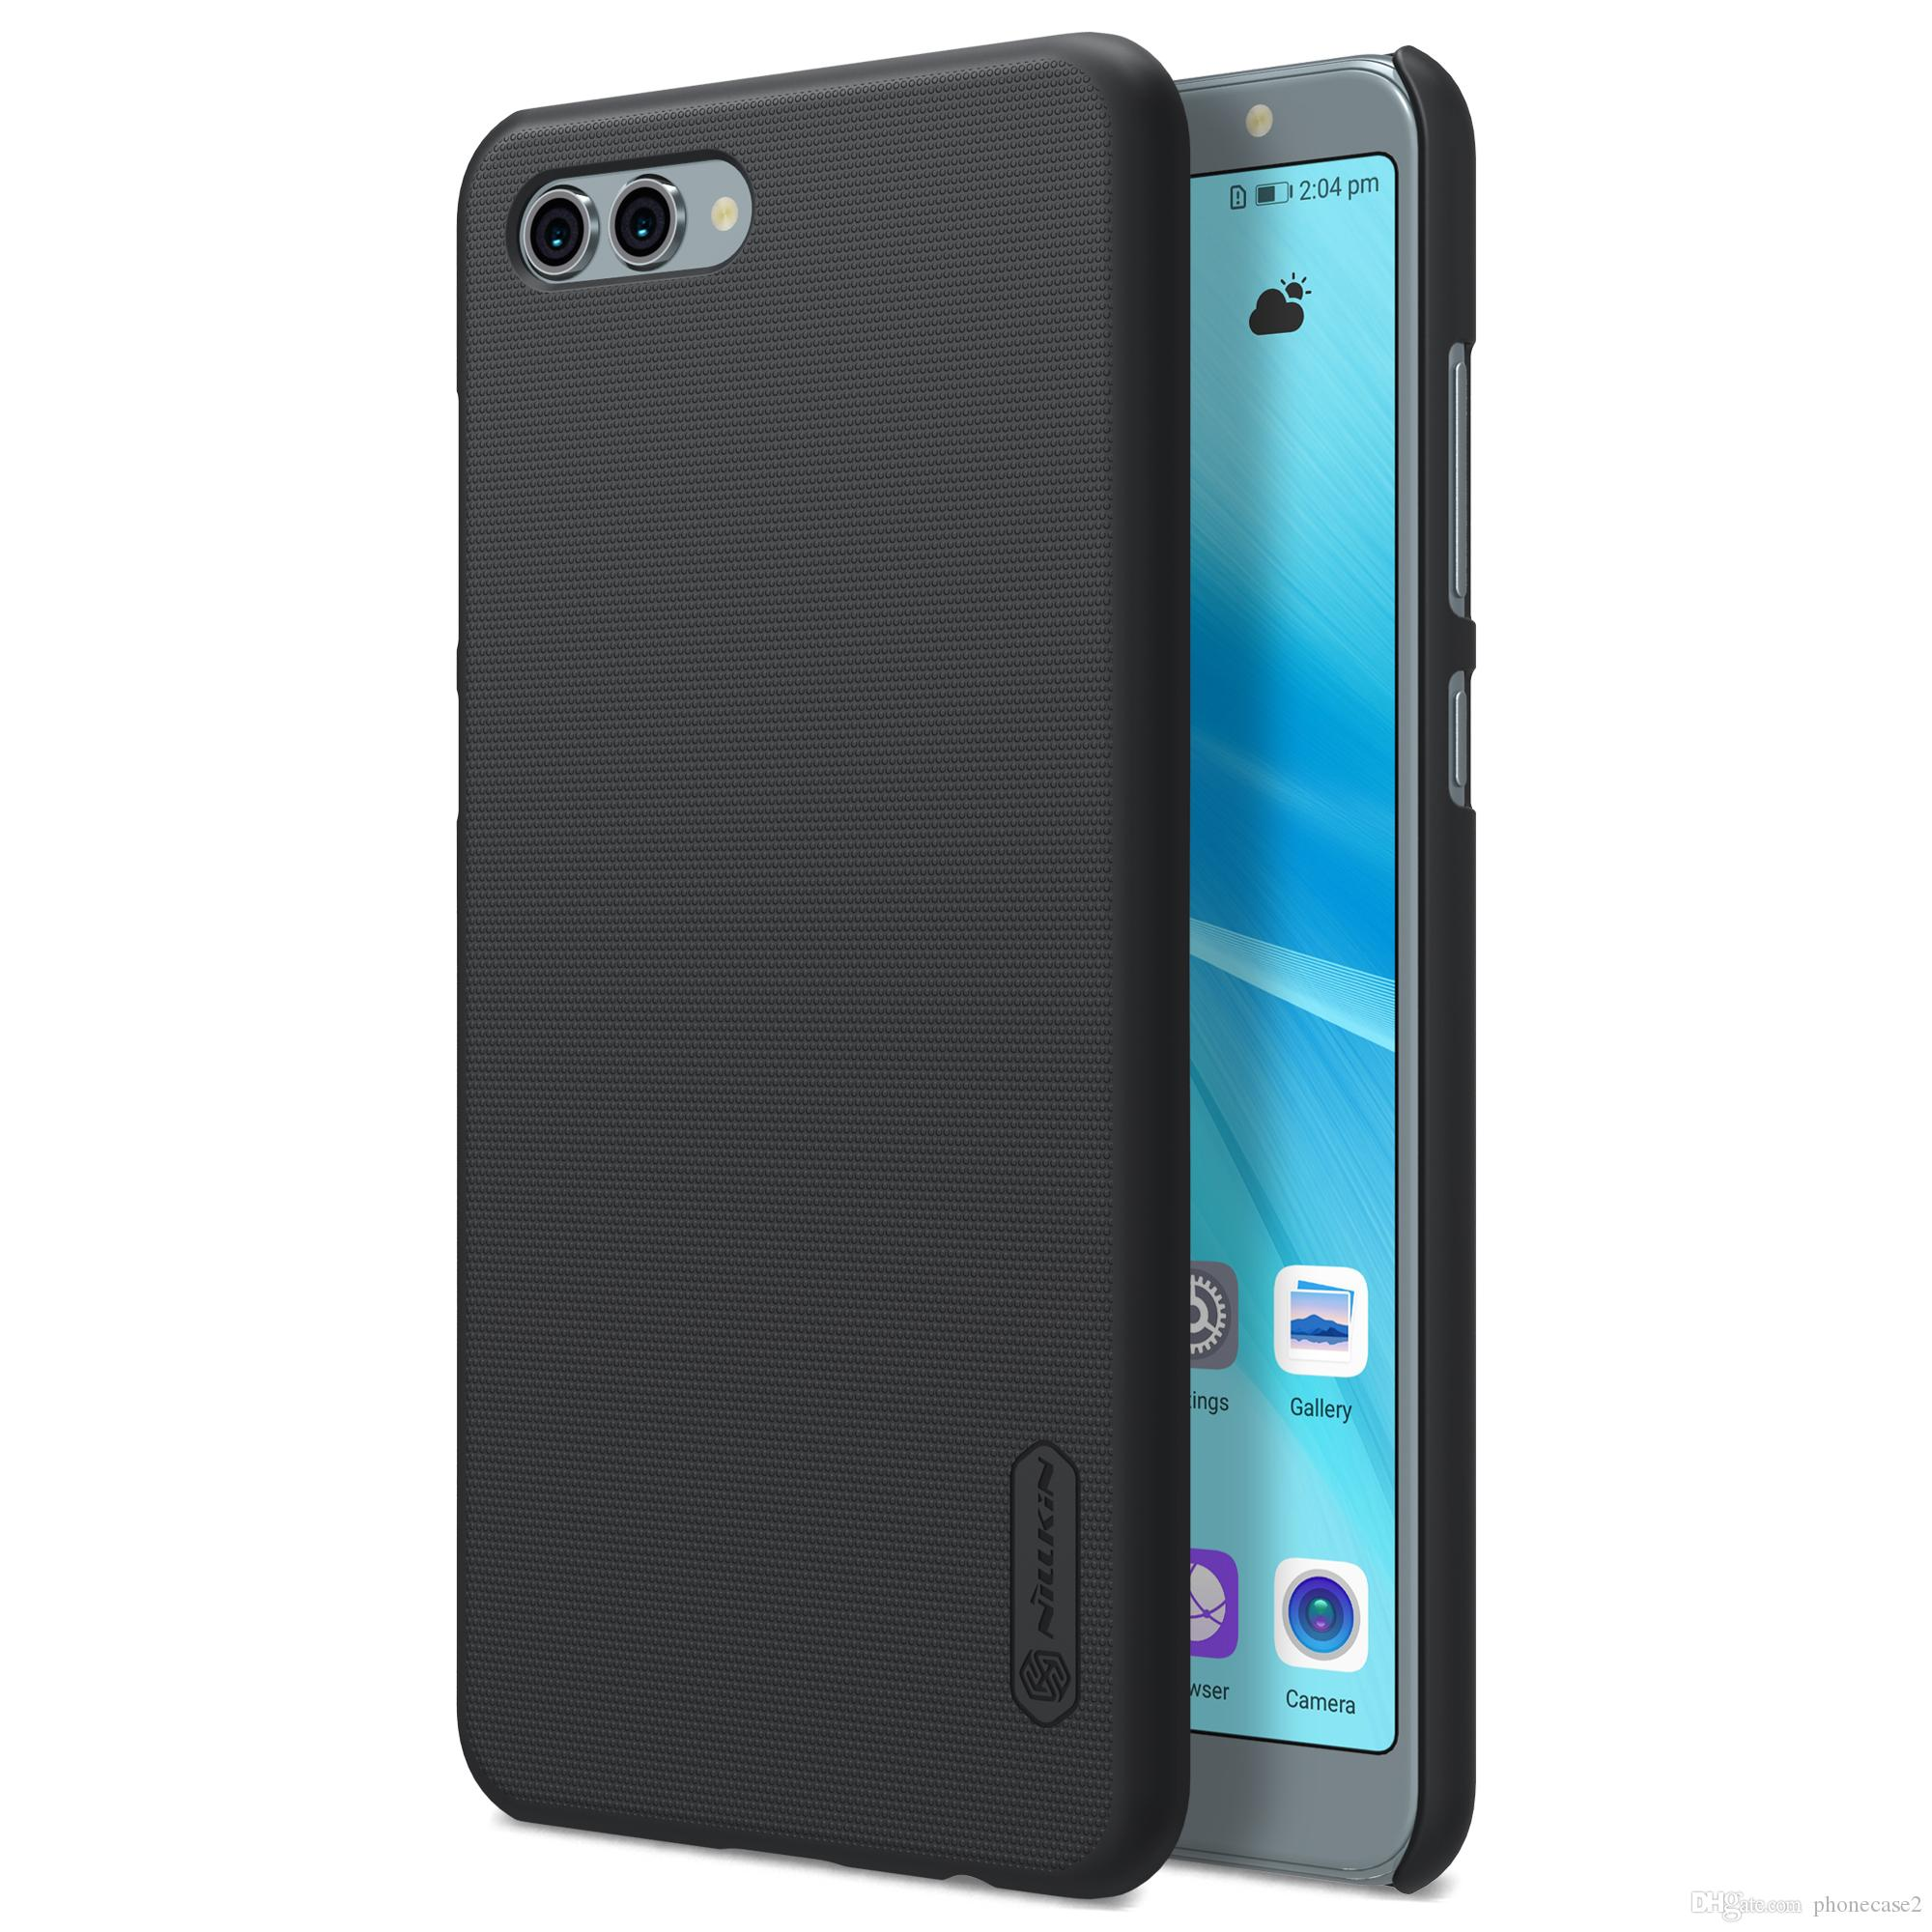 defcc07ef6cf SFor Huawei Nova 2S Case NILLKIN Super Frosted Shield Back Cover SFor Huawei  Nova 2S Case Hard PC With Free Screen Film Cell Phone Wallet Cheap Cell  Phone ...